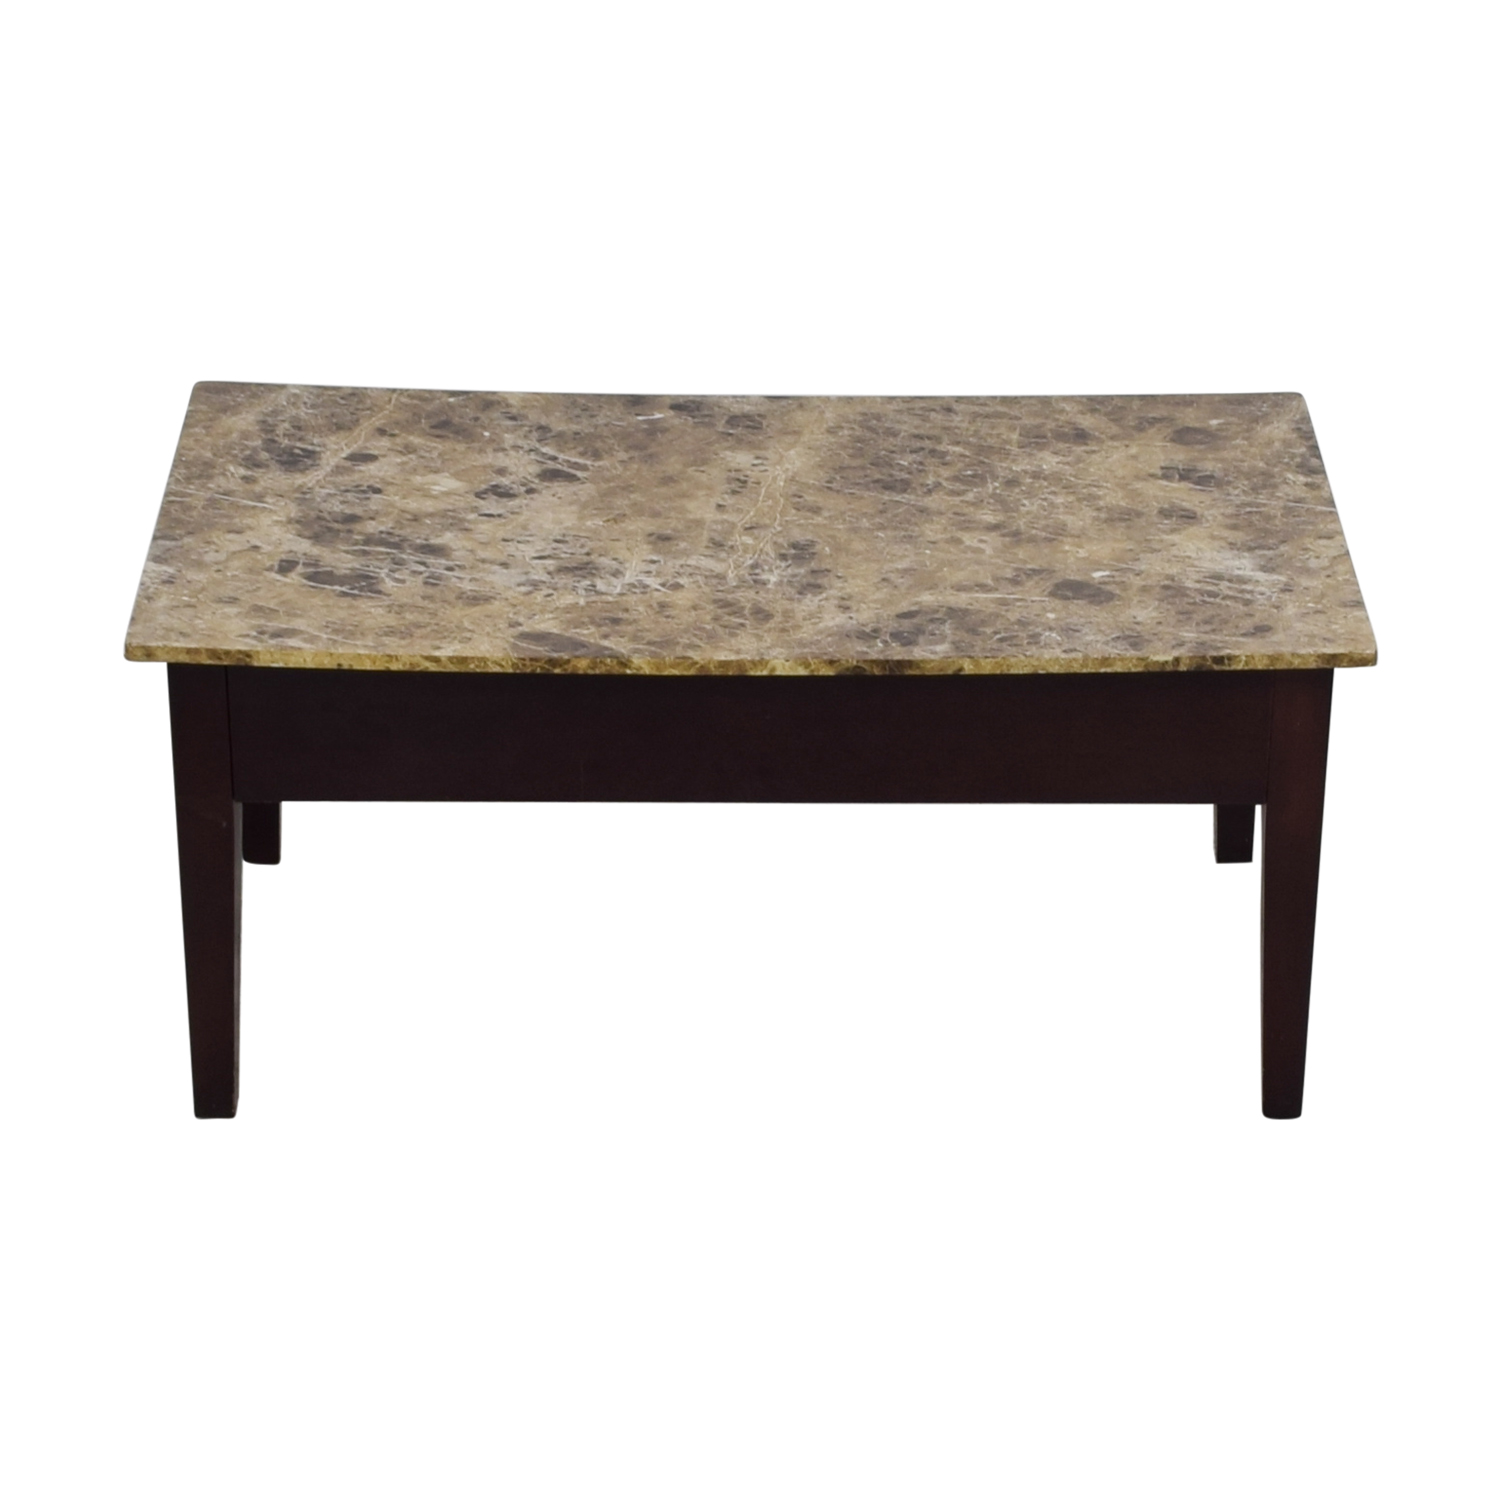 Superb 90 Off Faux Marble Top Coffee Table With Storage Tables Caraccident5 Cool Chair Designs And Ideas Caraccident5Info